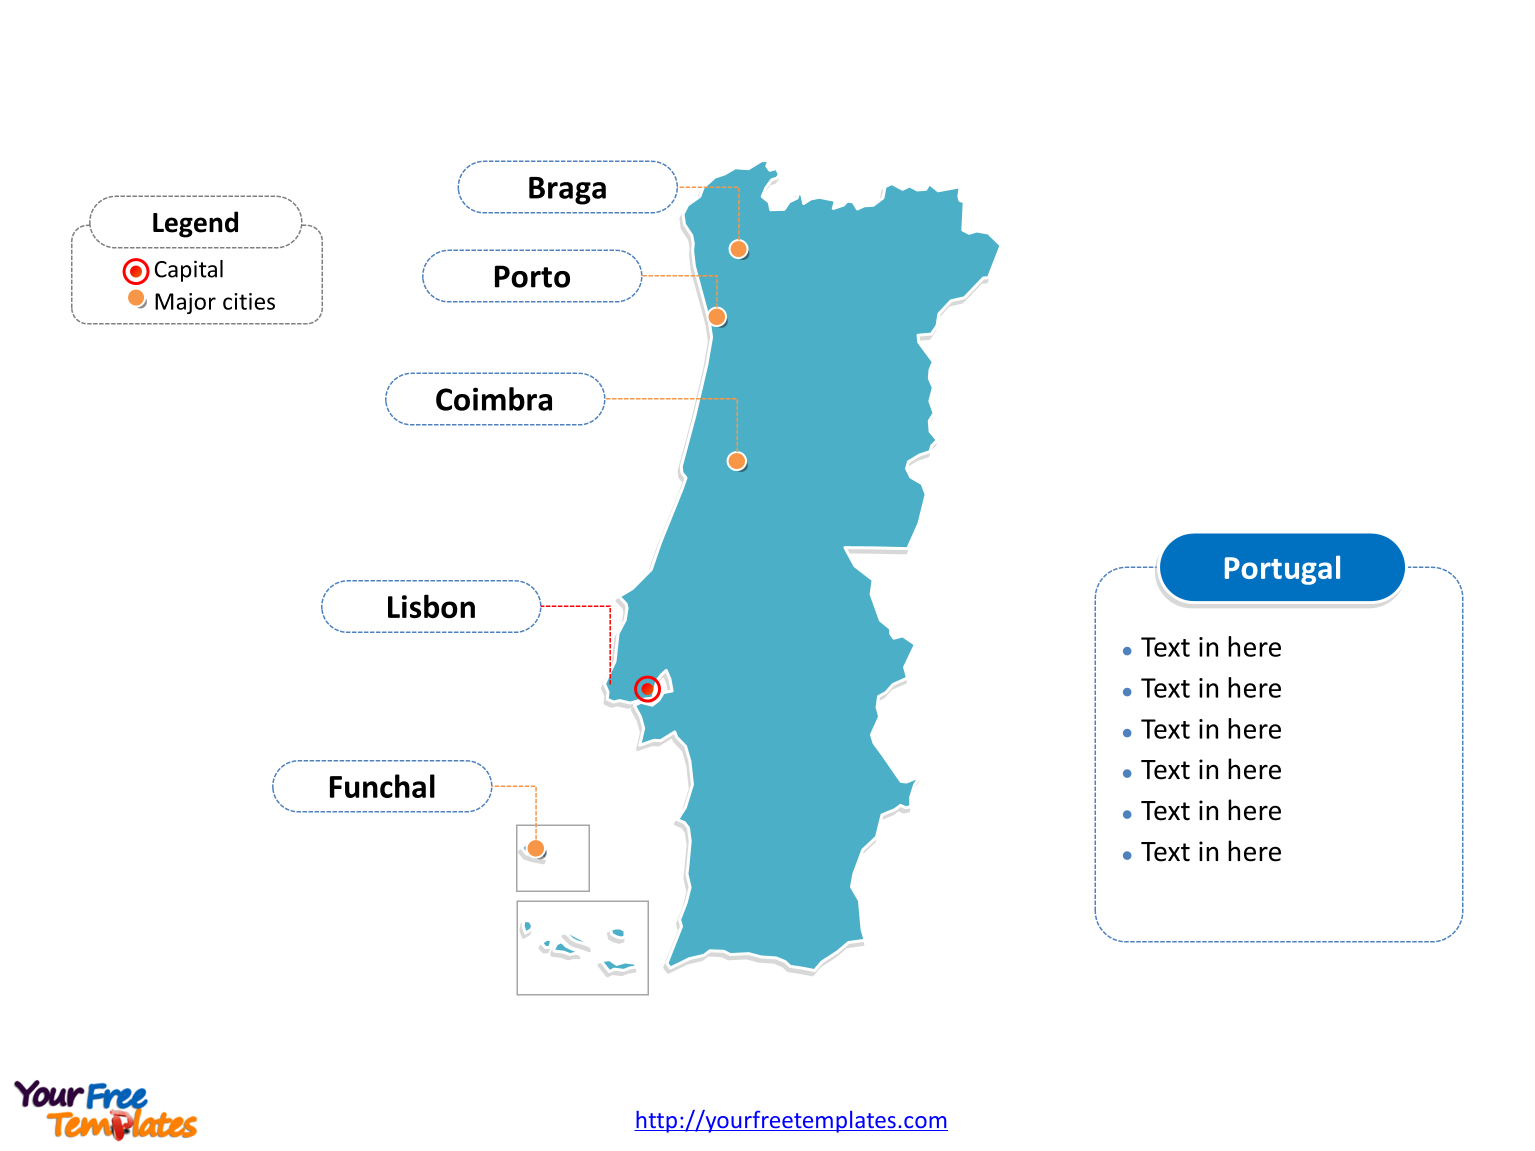 Free Portugal PowerPoint Map Free PowerPoint Templates - Portugal map